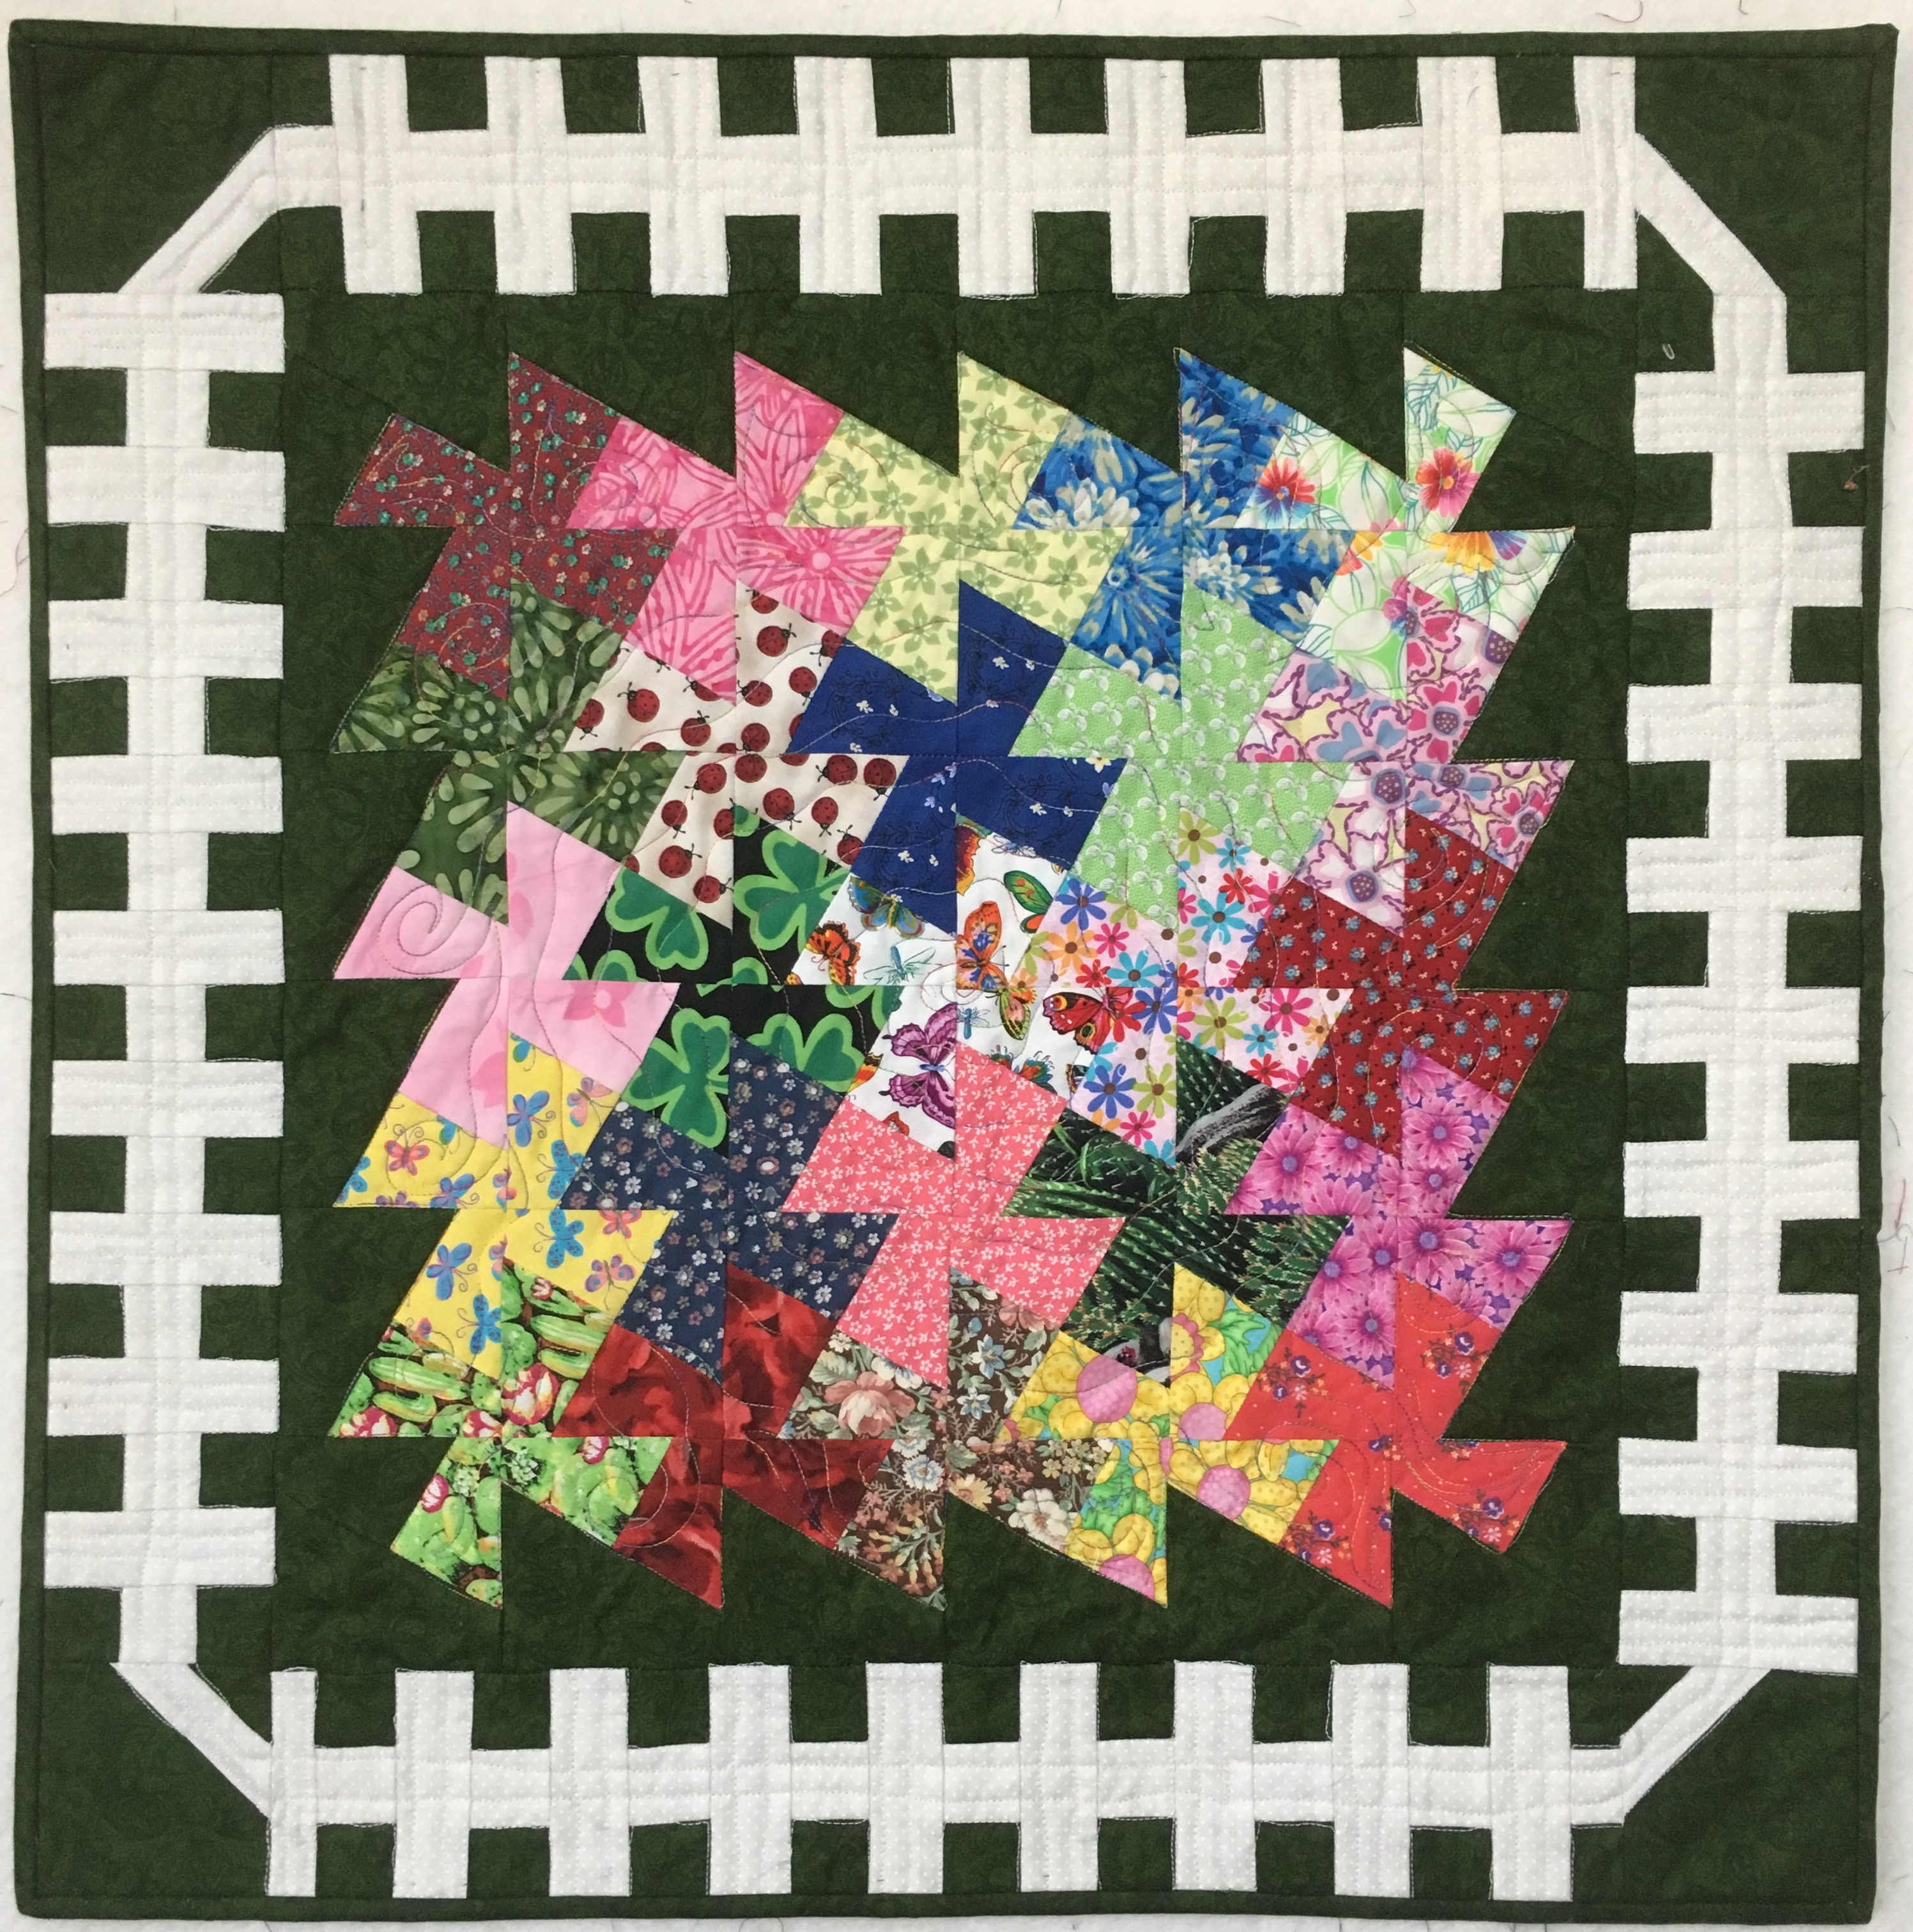 Garden Twister quilt by Andi Stanfield